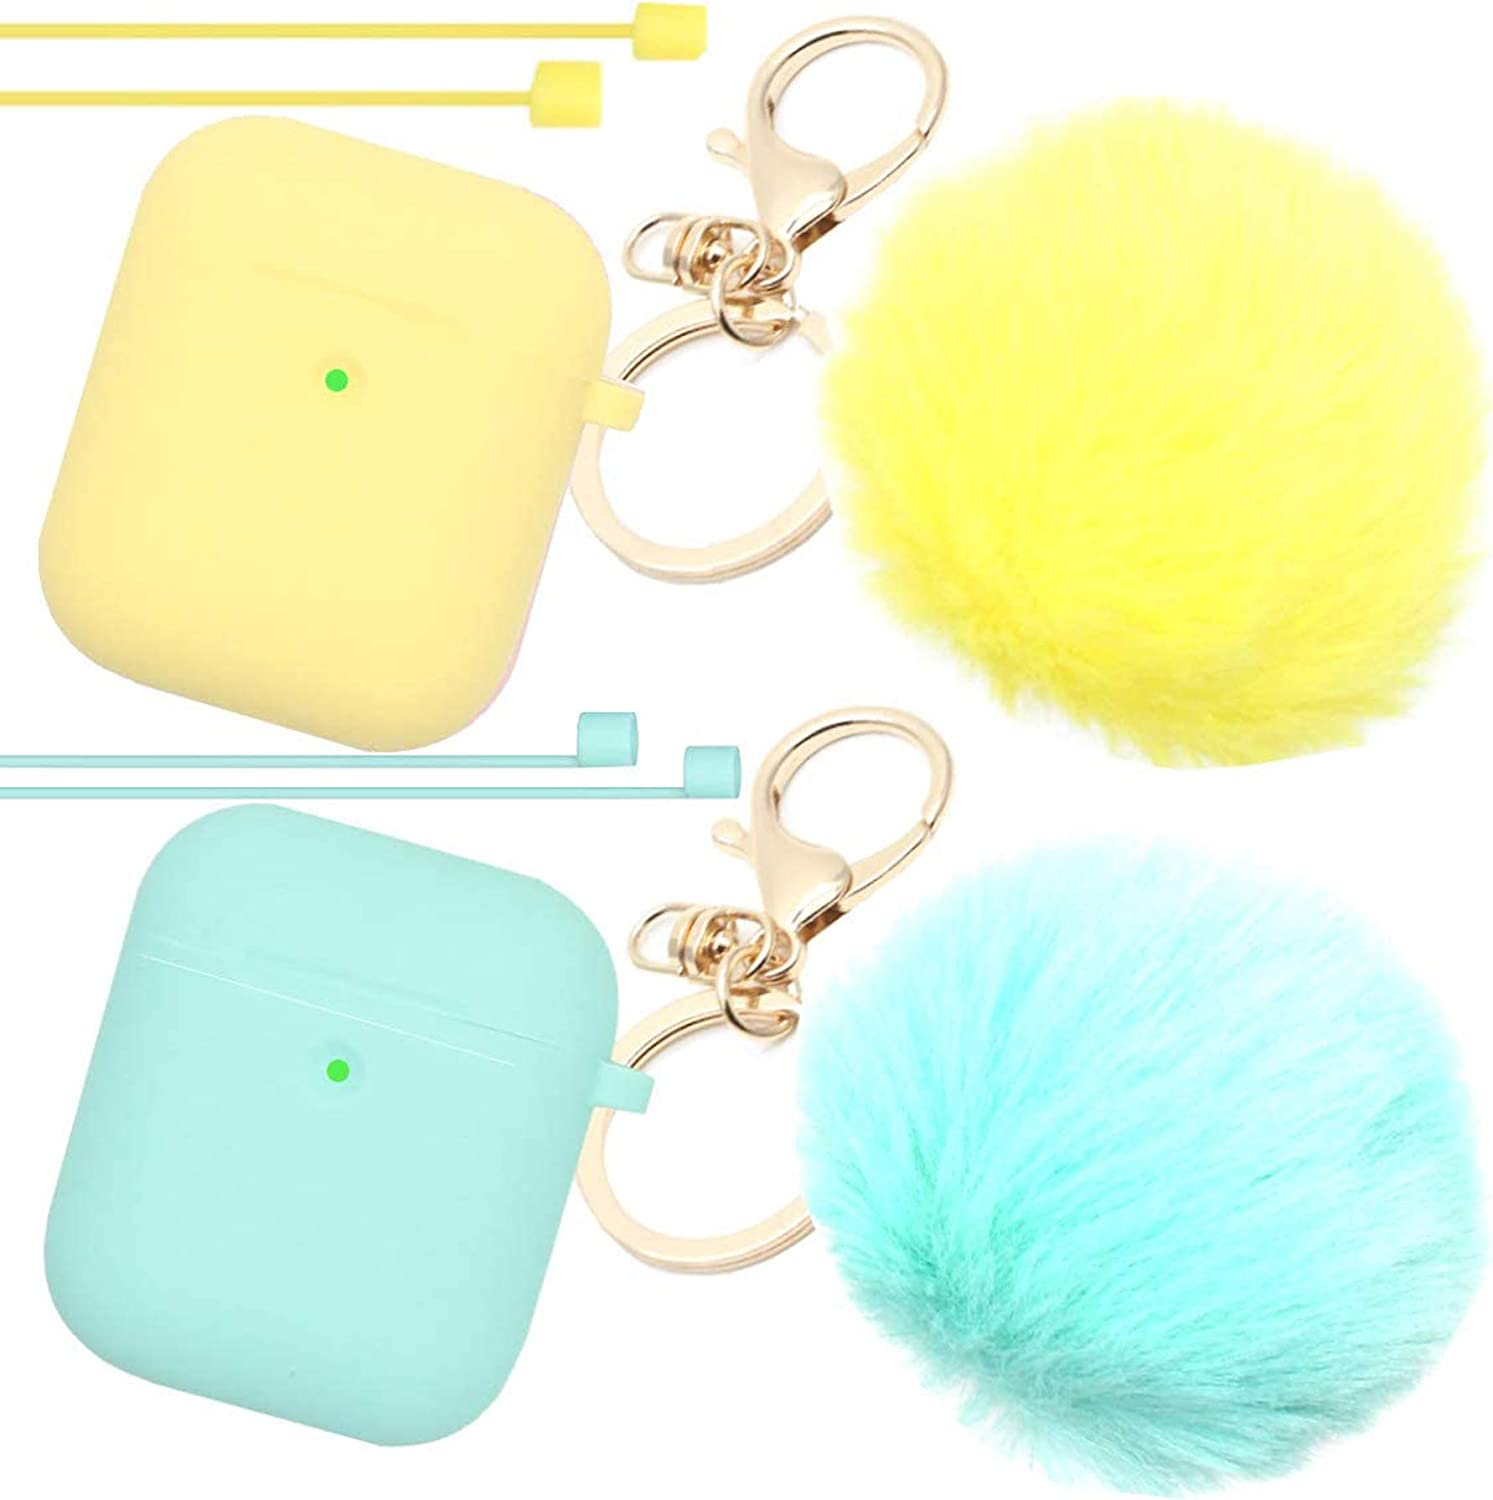 Airpods Case Newest Upgrade (Front LED Visible) ANTARCTICASE Skin Drop Proof Protective Pompom Keychain Case Cover Silicone for Apple Airpods 2&1 Charging Cute Fur Ball Keychain (Yellow+Mint Green)